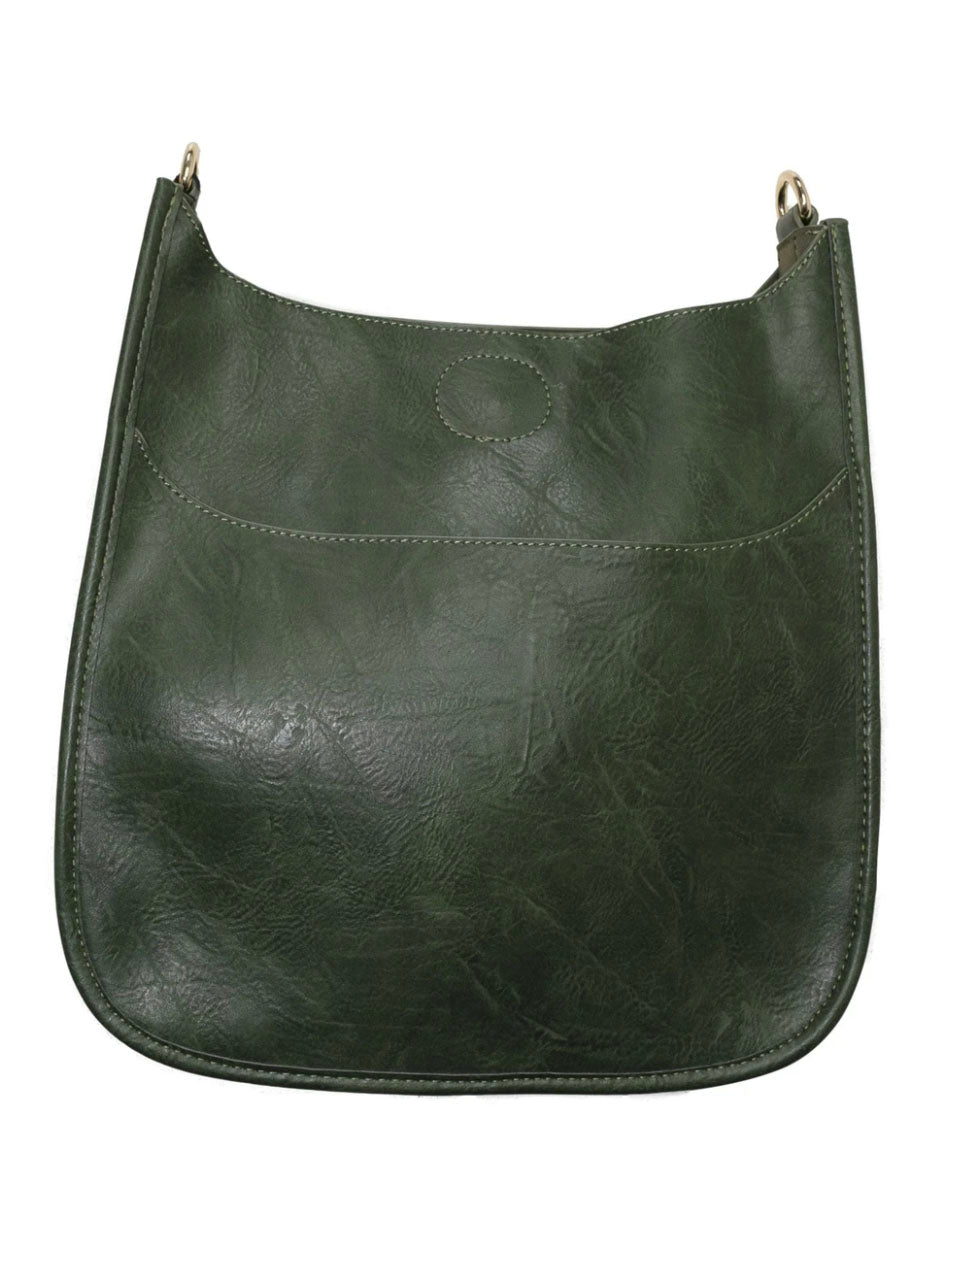 Ahdorned Faux Leather Large Distressed Messenger Bag in Dark Green-No Strap!